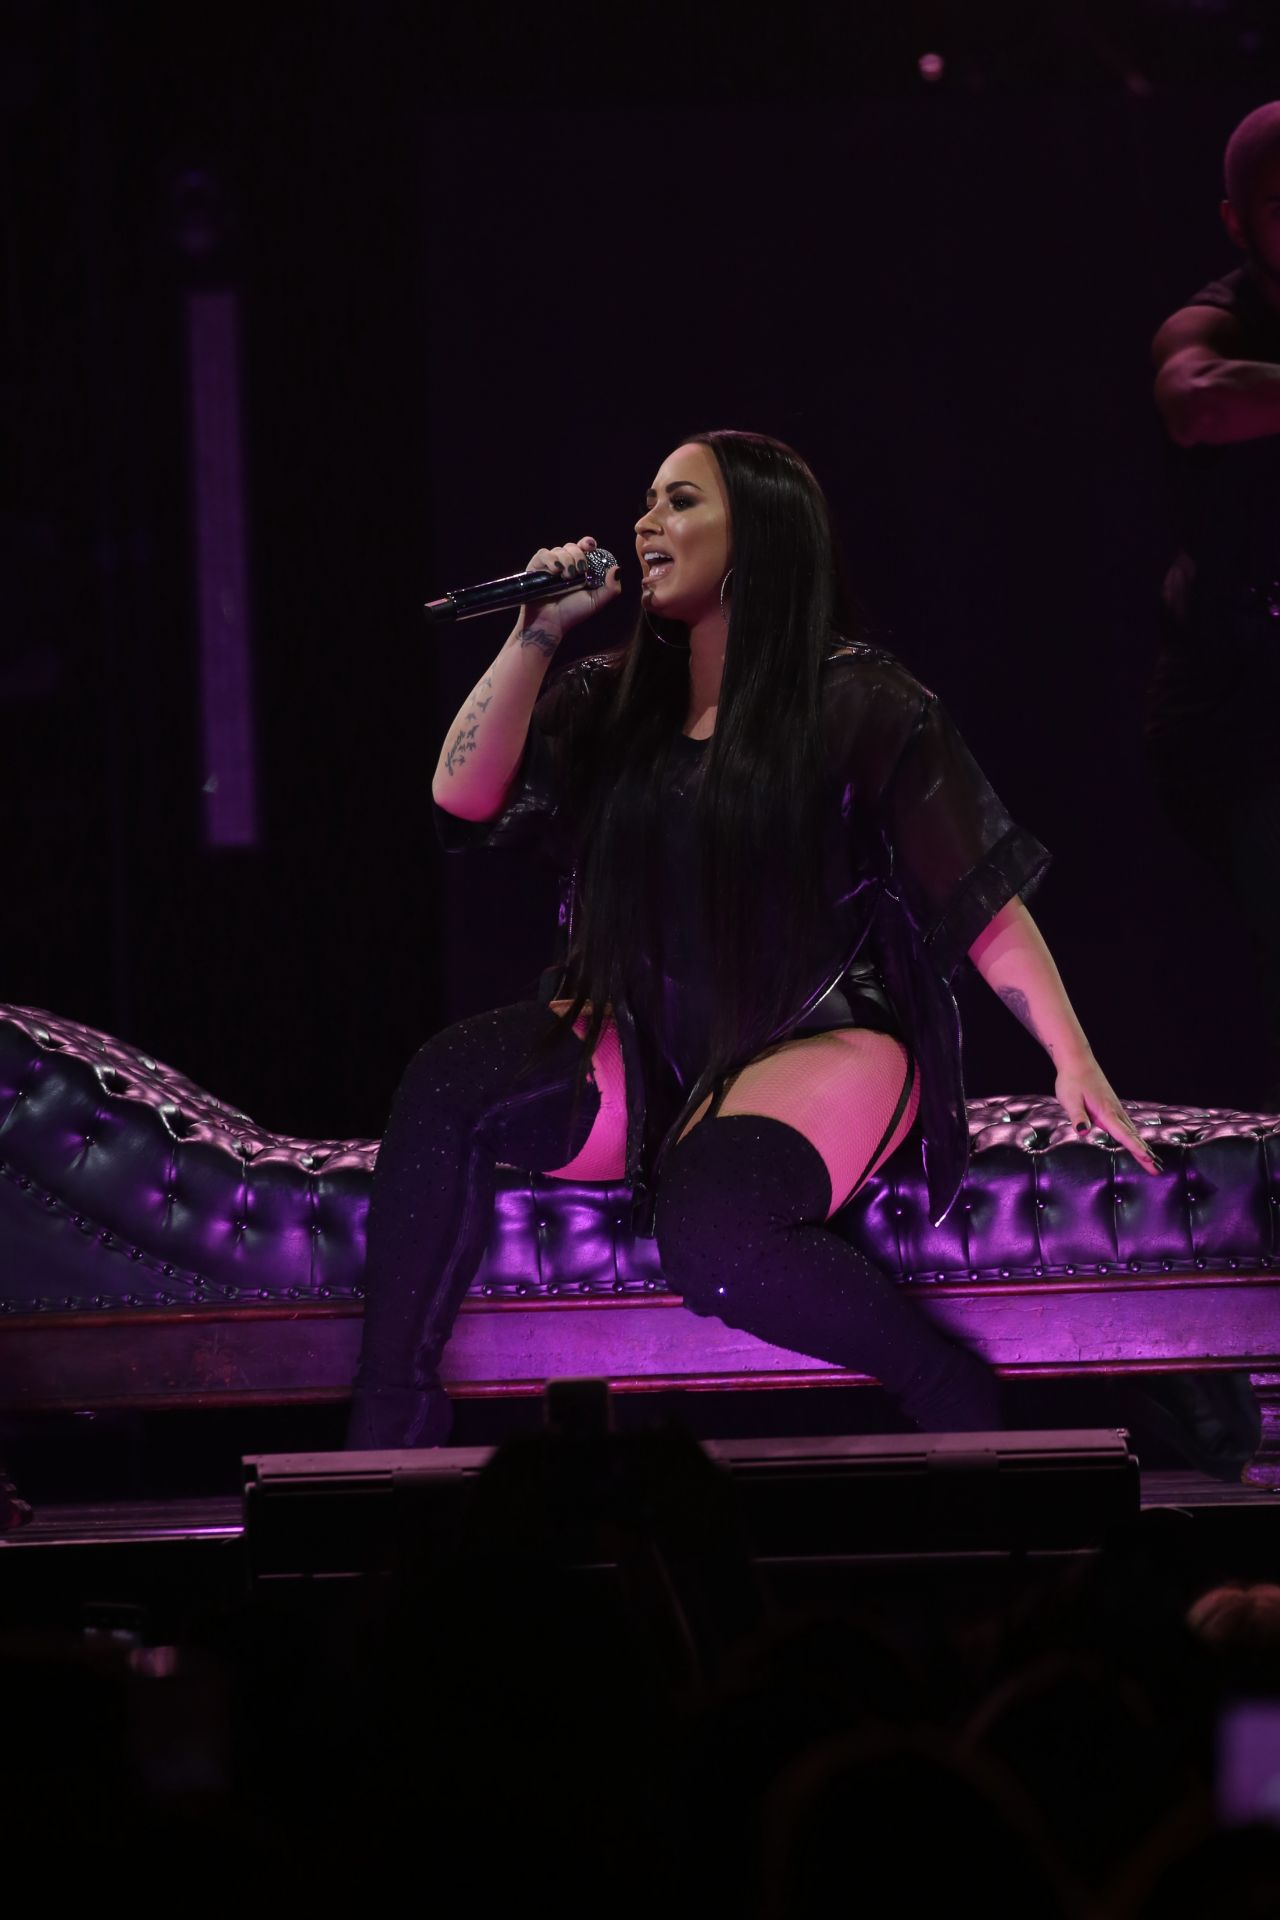 Demi Lovato Performing Live At Prudential Center In